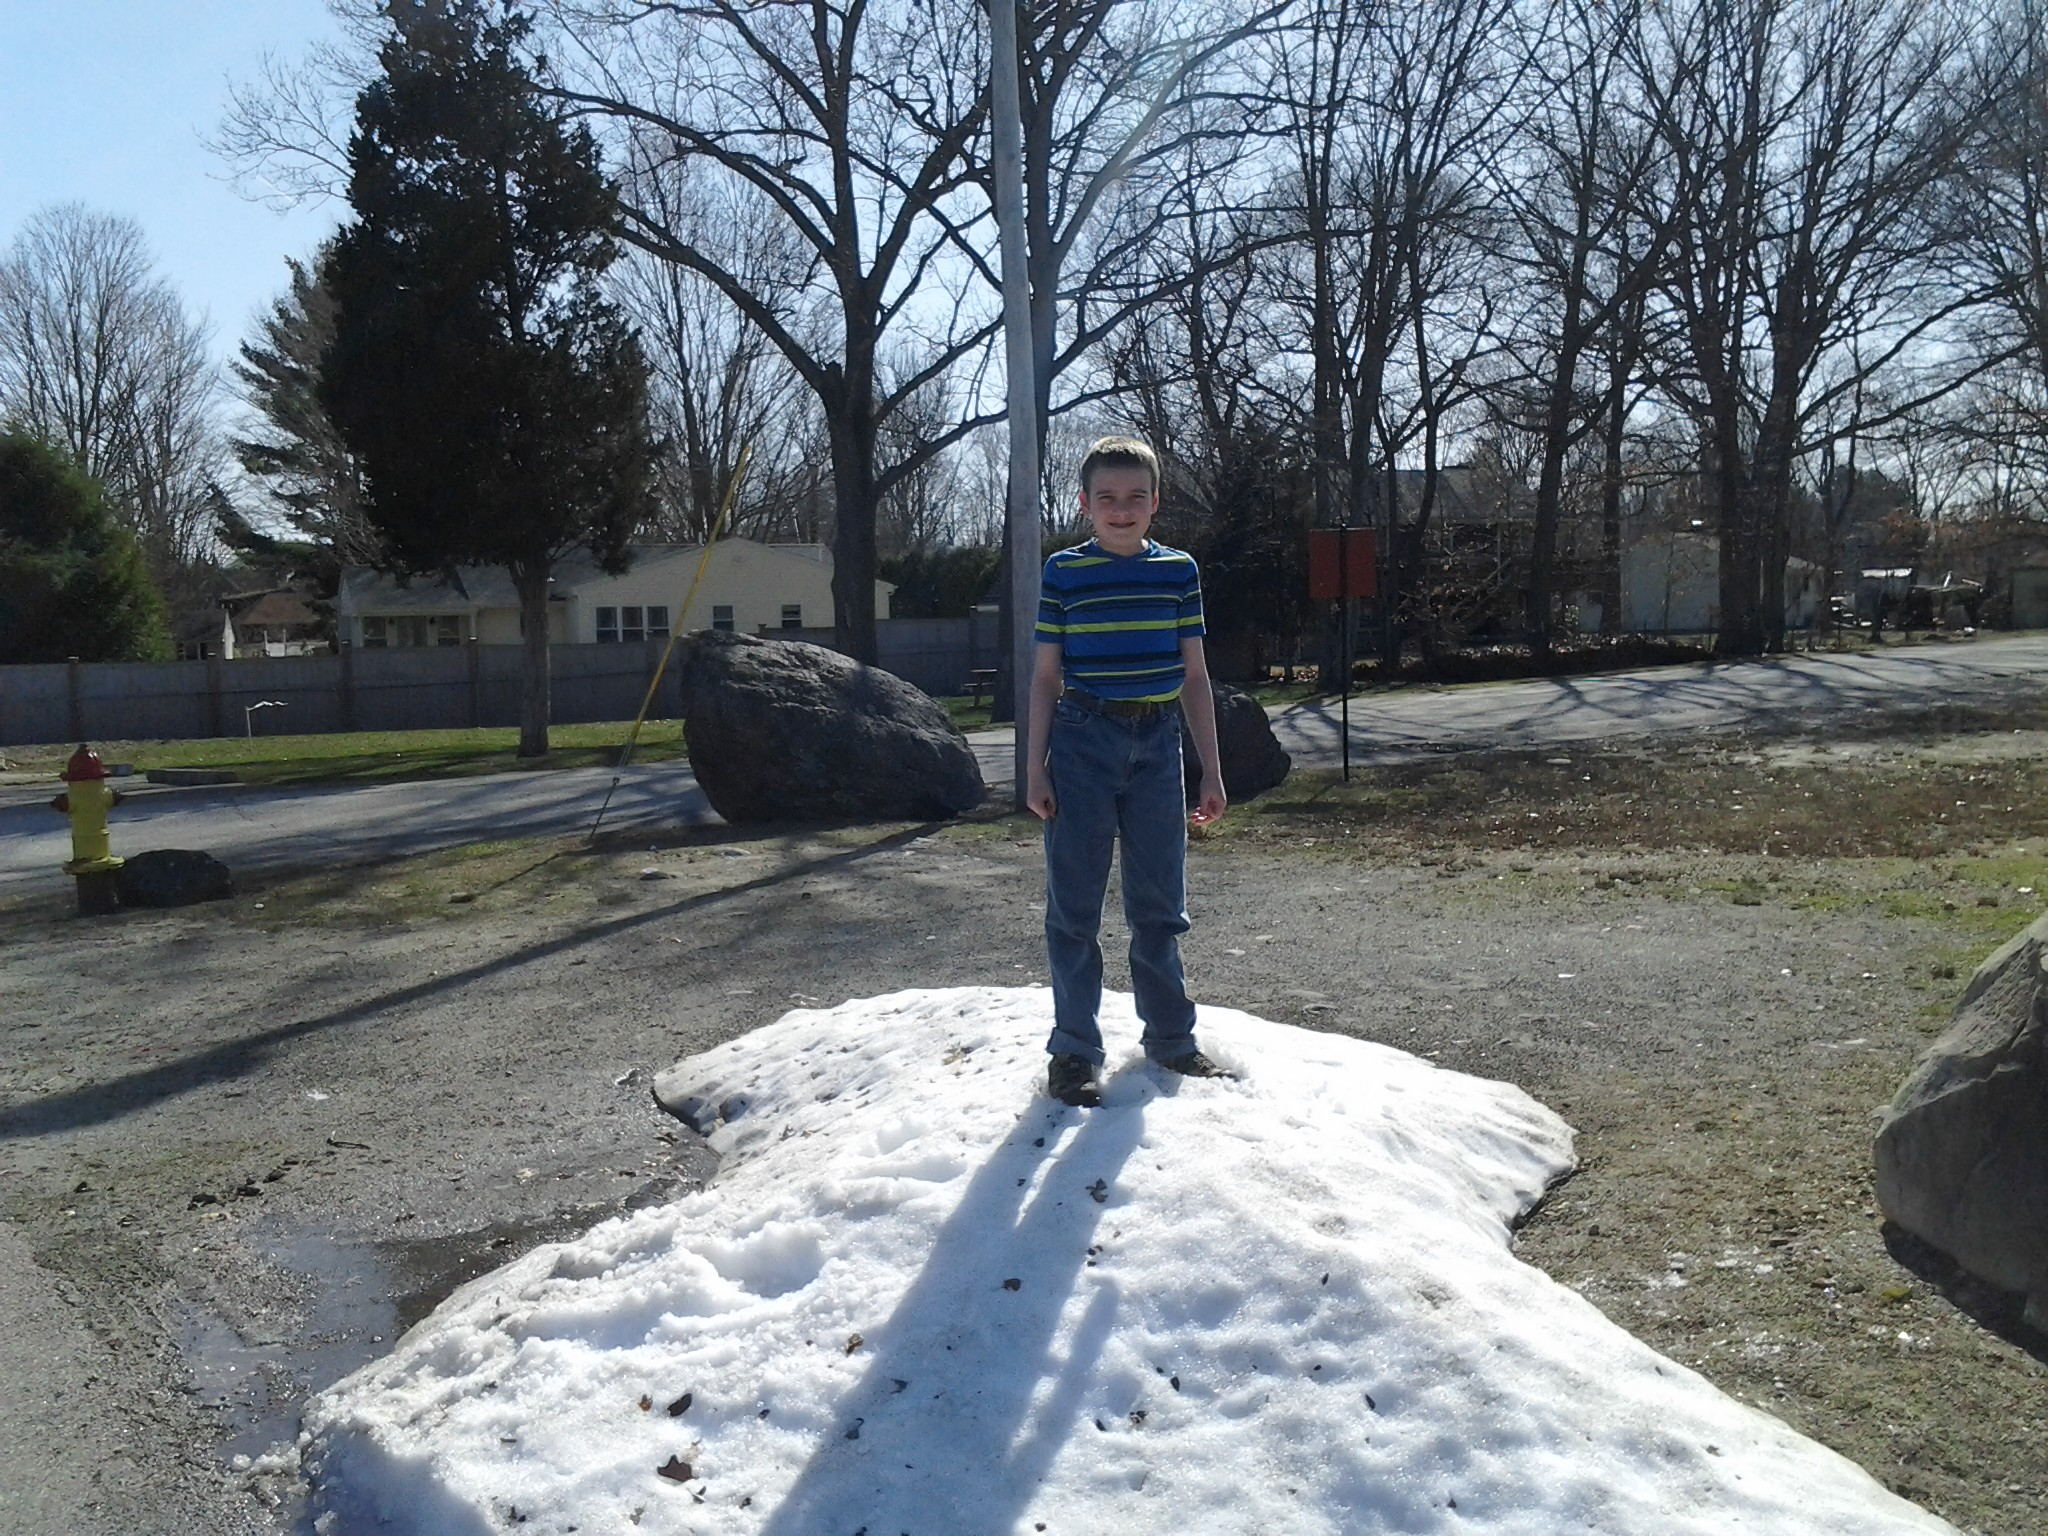 M wearing short sleeves and jeans, standing on a pile of un-melted snow, in early April